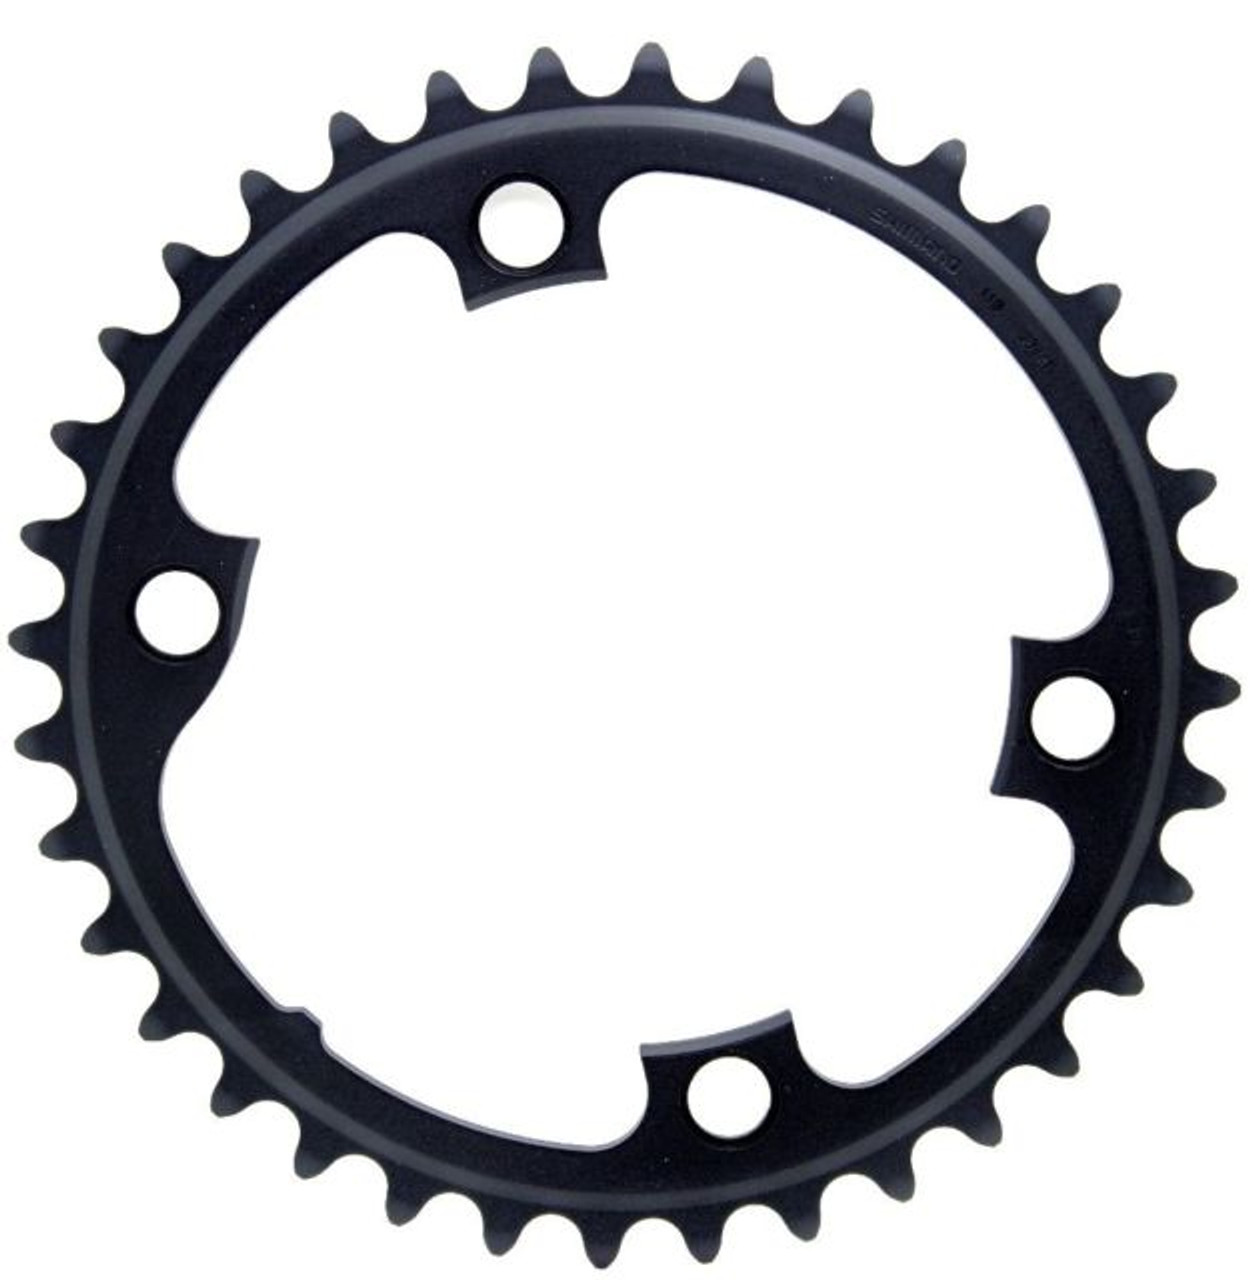 1093ef20075 Shimano Ultegra R8000 11-Speed Inner Chainring - Glory Cycles